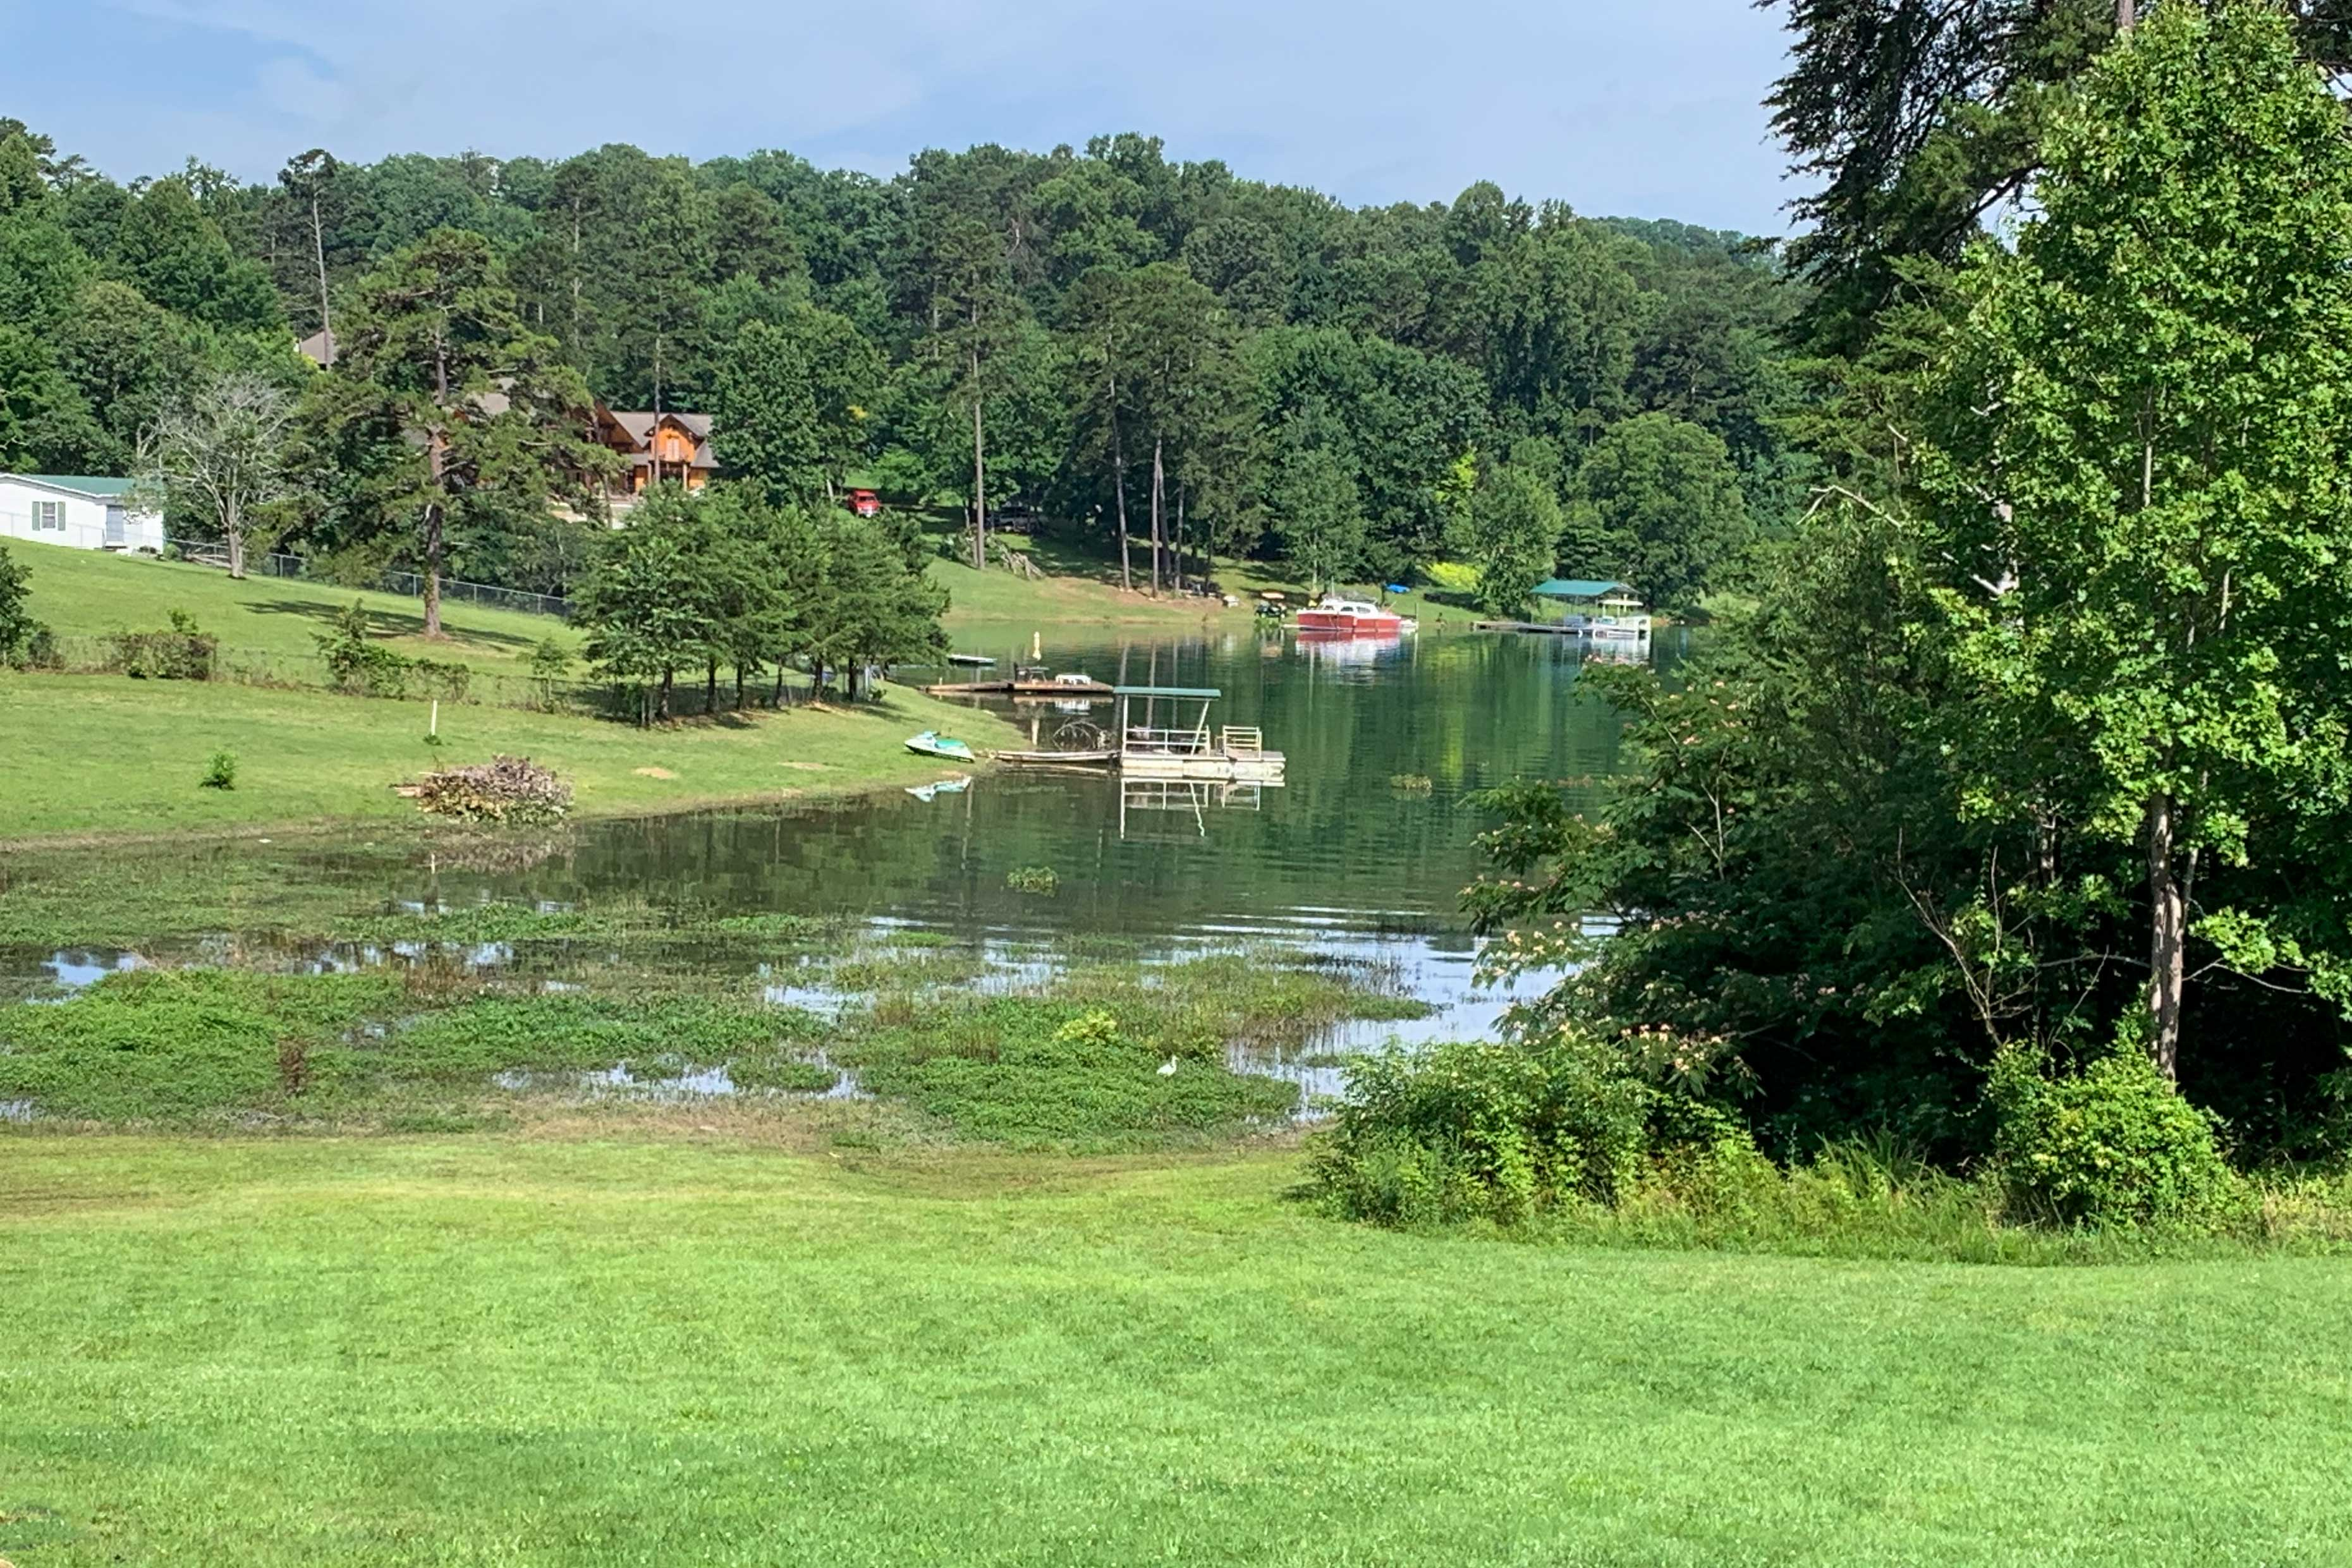 The lake is located just down from the home!